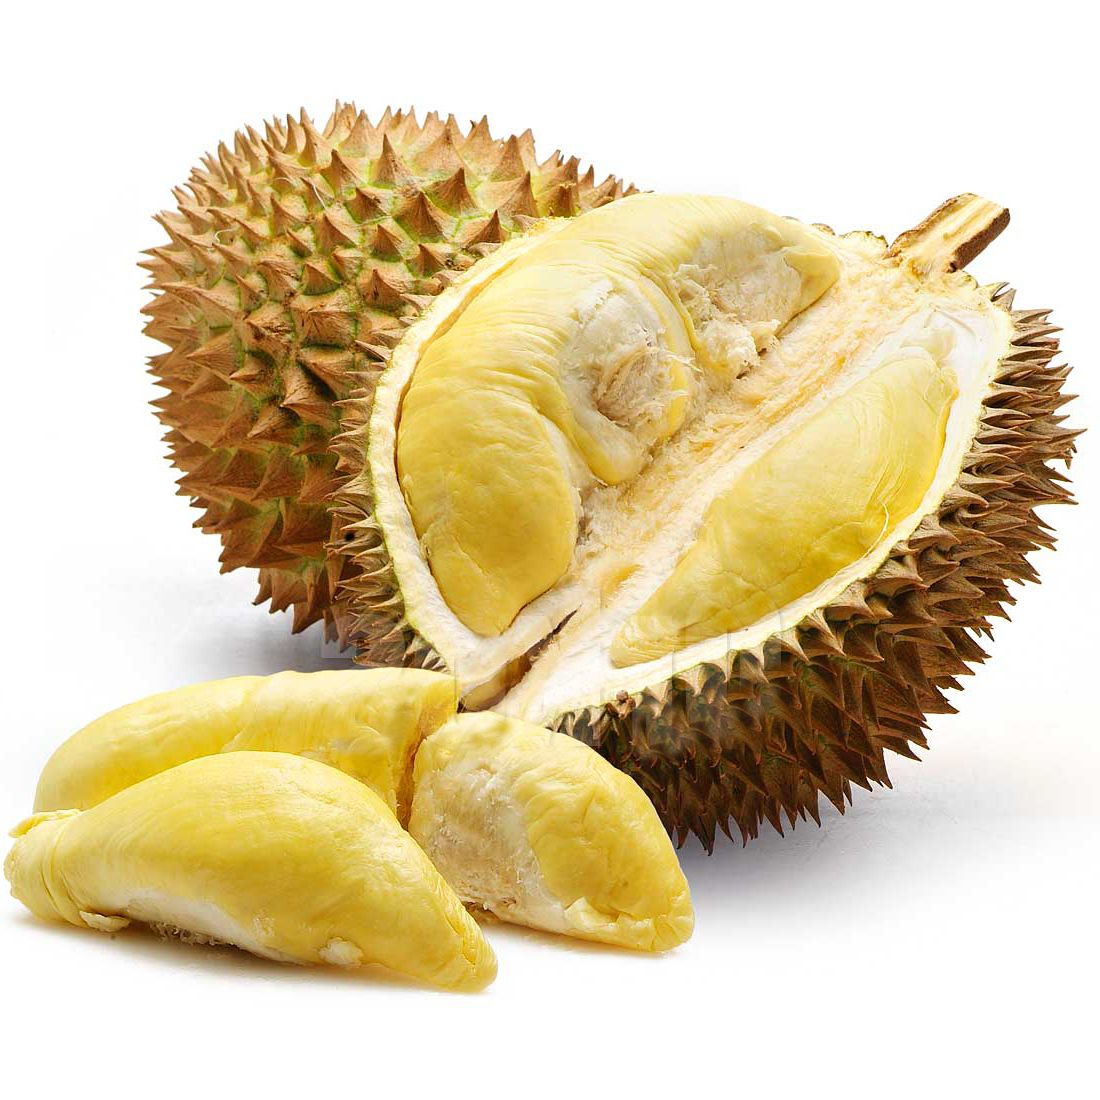 How to pick and eat durian fruit the washington post - Health Benefits Of Durian An Extremely Nutritious Fruit It Is Rich In Vitamin B C And E And With High Iron Content Eating Durian Is Said To Restore The